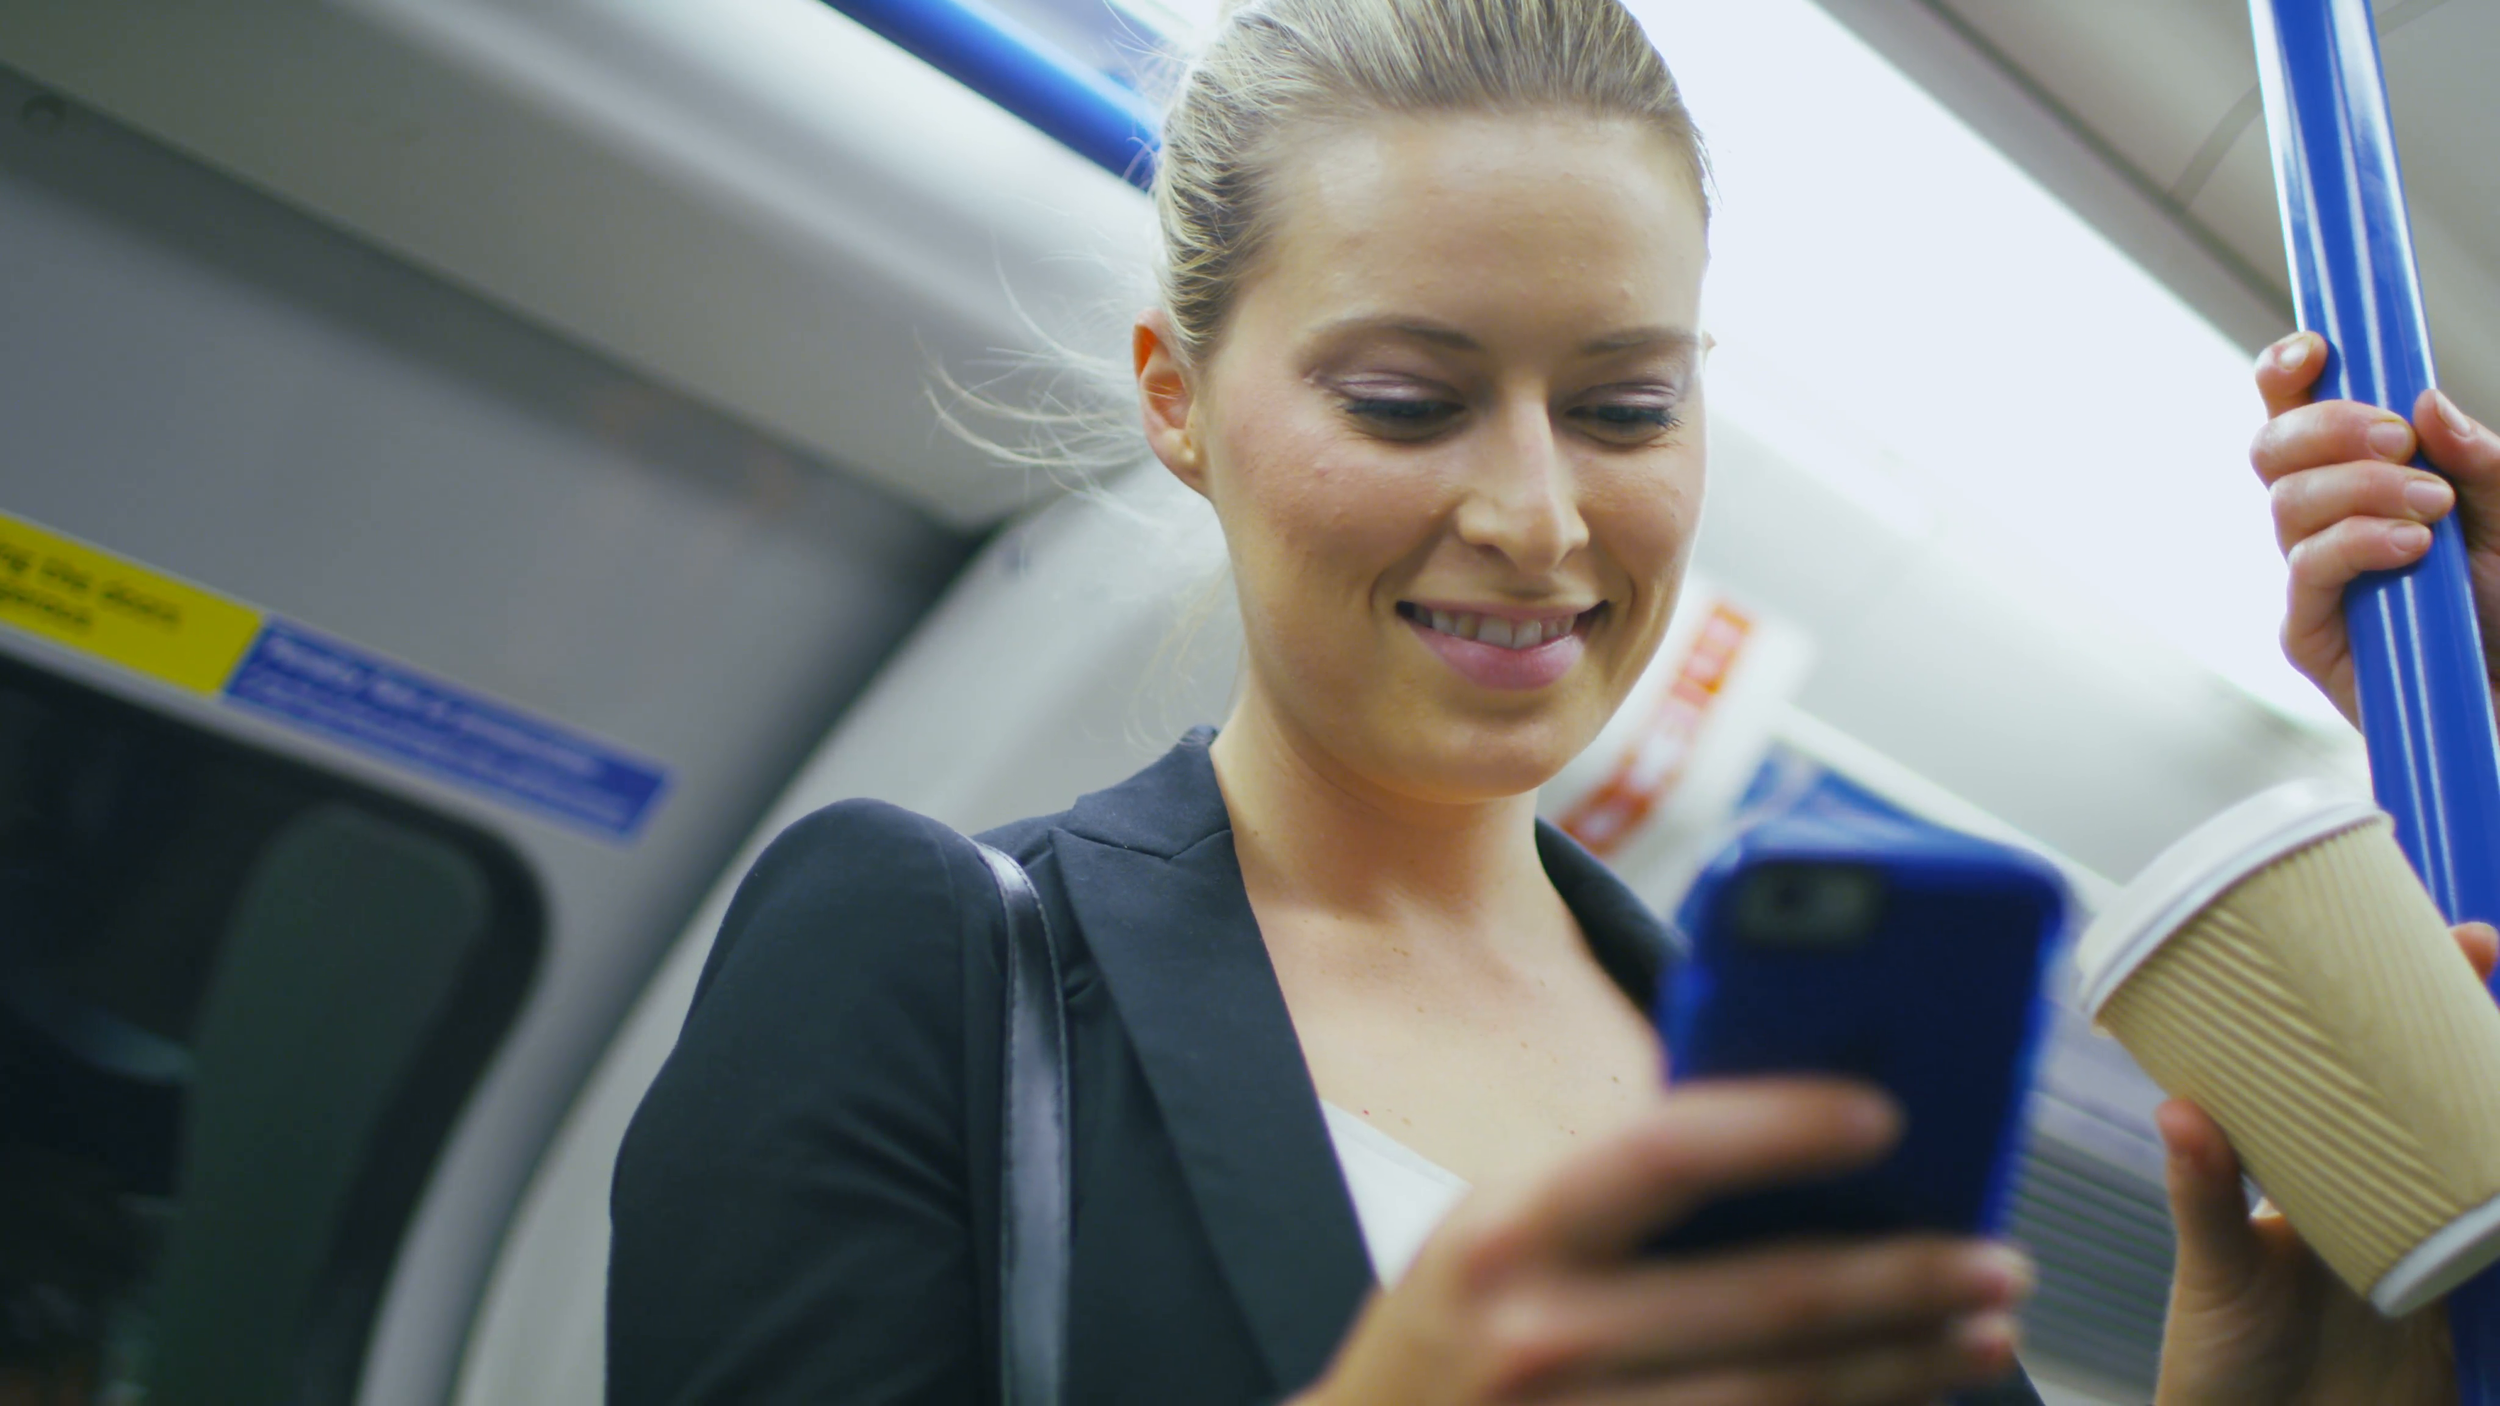 4k-attractive-business-woman-standing-on-a-train-drinking-from-a-coffee-cup-whilst-reading-her-phone-in-slow-motion-shot-on-red-epic_4jtrflla__F0011.png